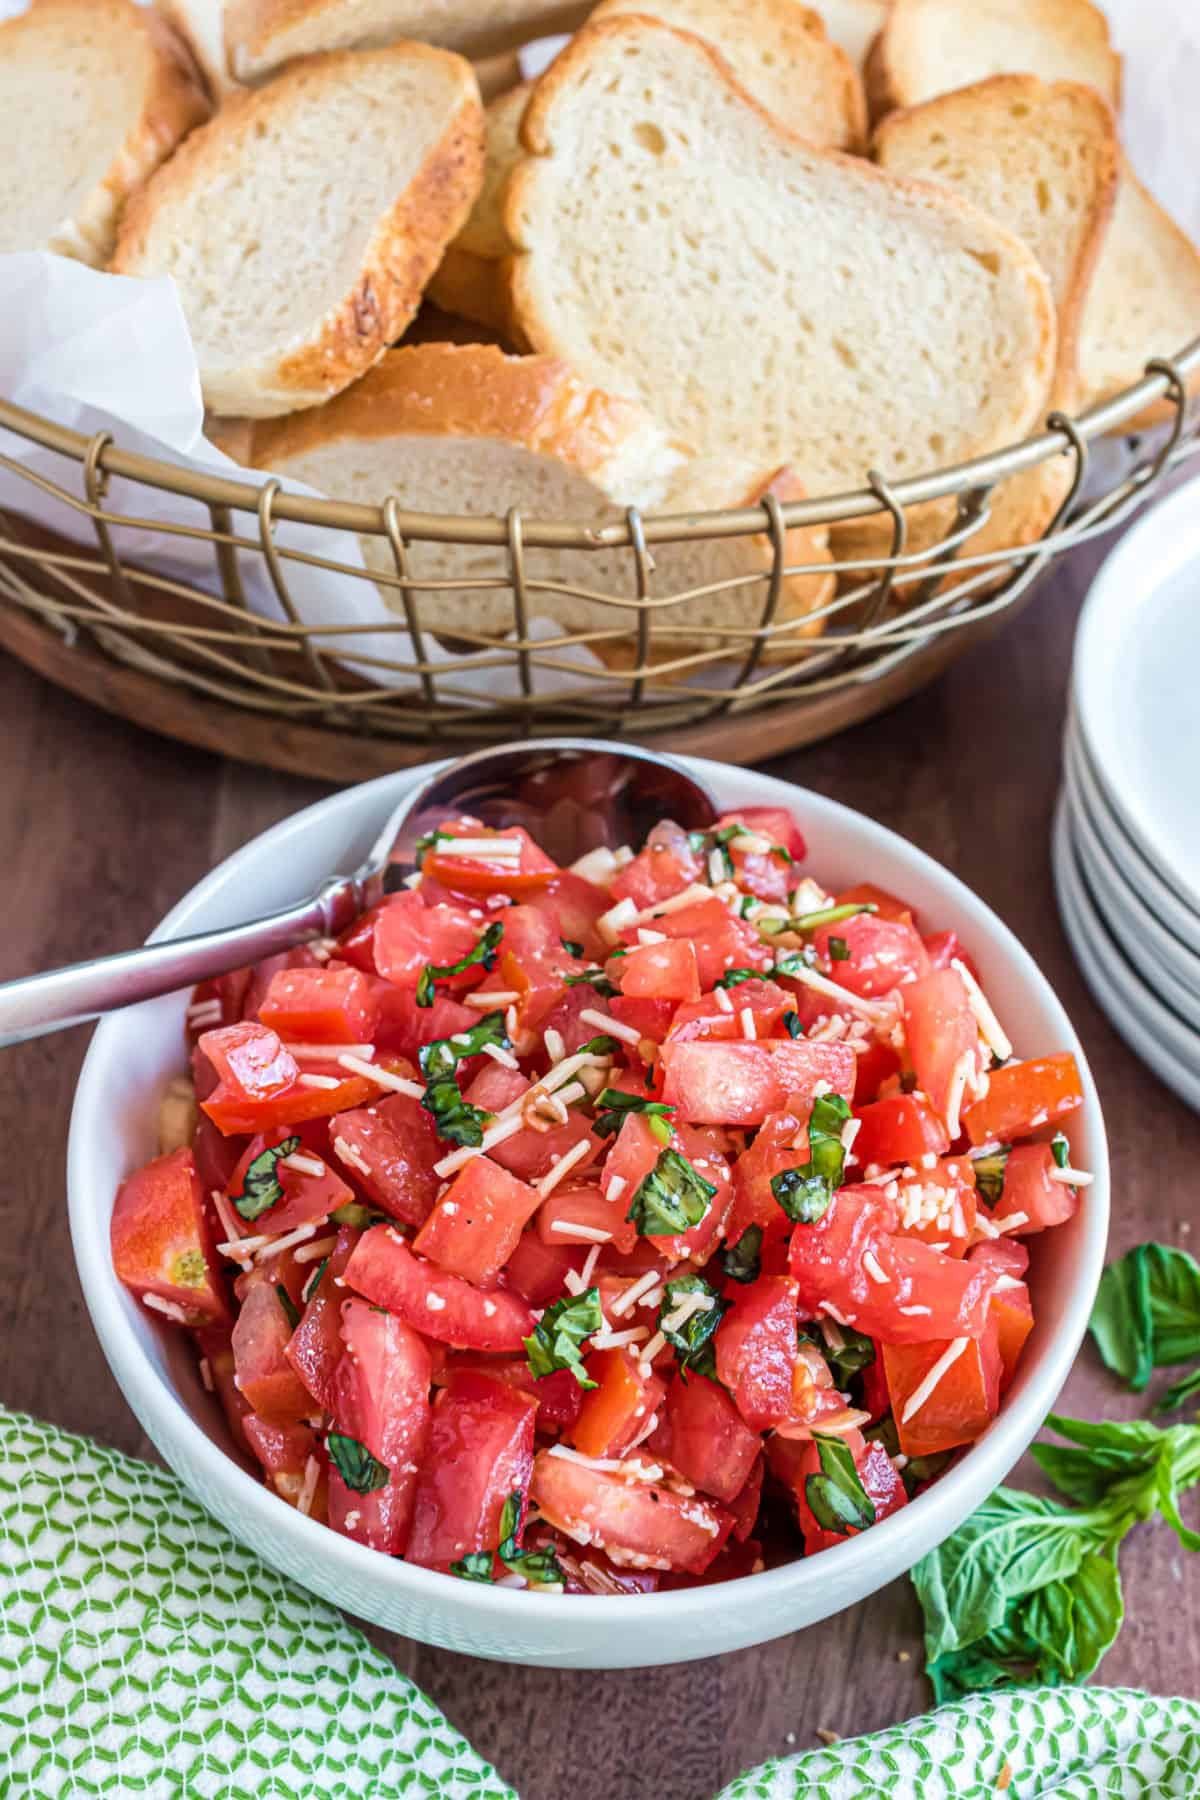 Bruschetta in a white bowl with toasted bread in wire basket.